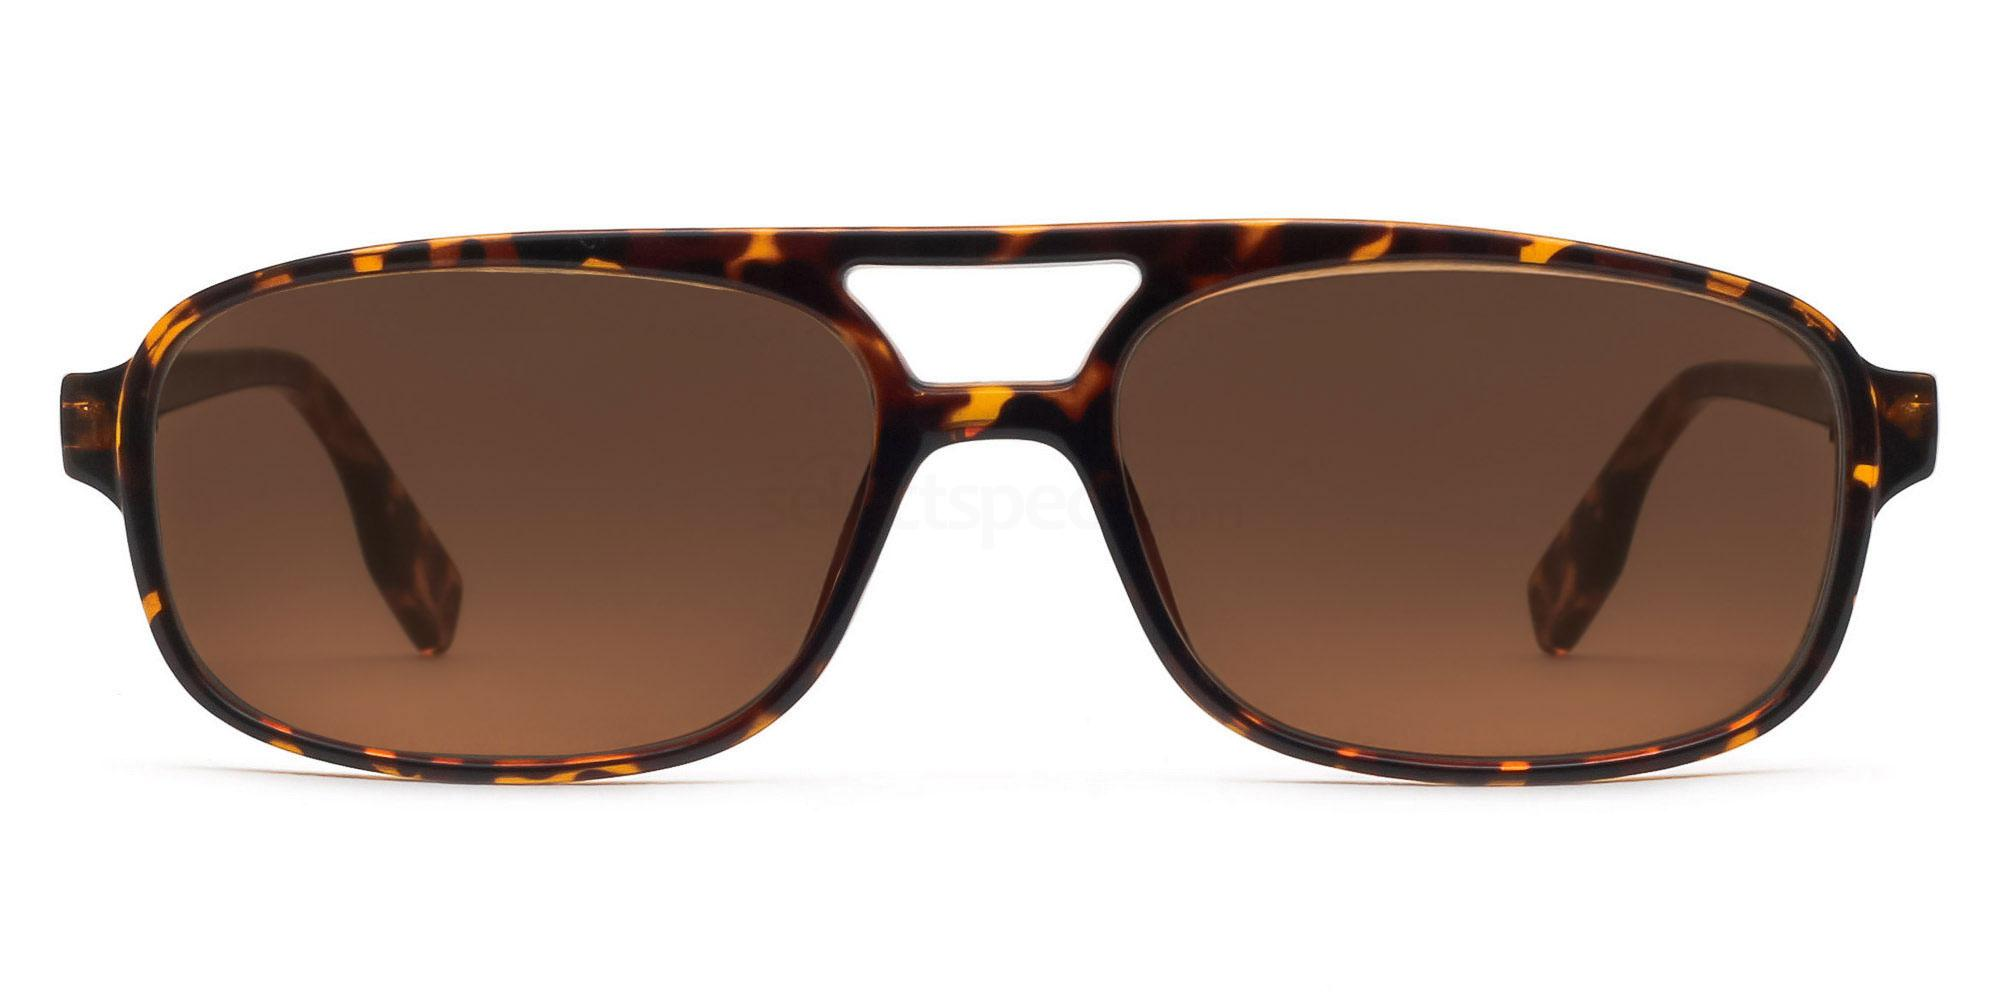 C04 Dark Brown P2395 - Demi Havana (Sunglasses) Sunglasses, Savannah